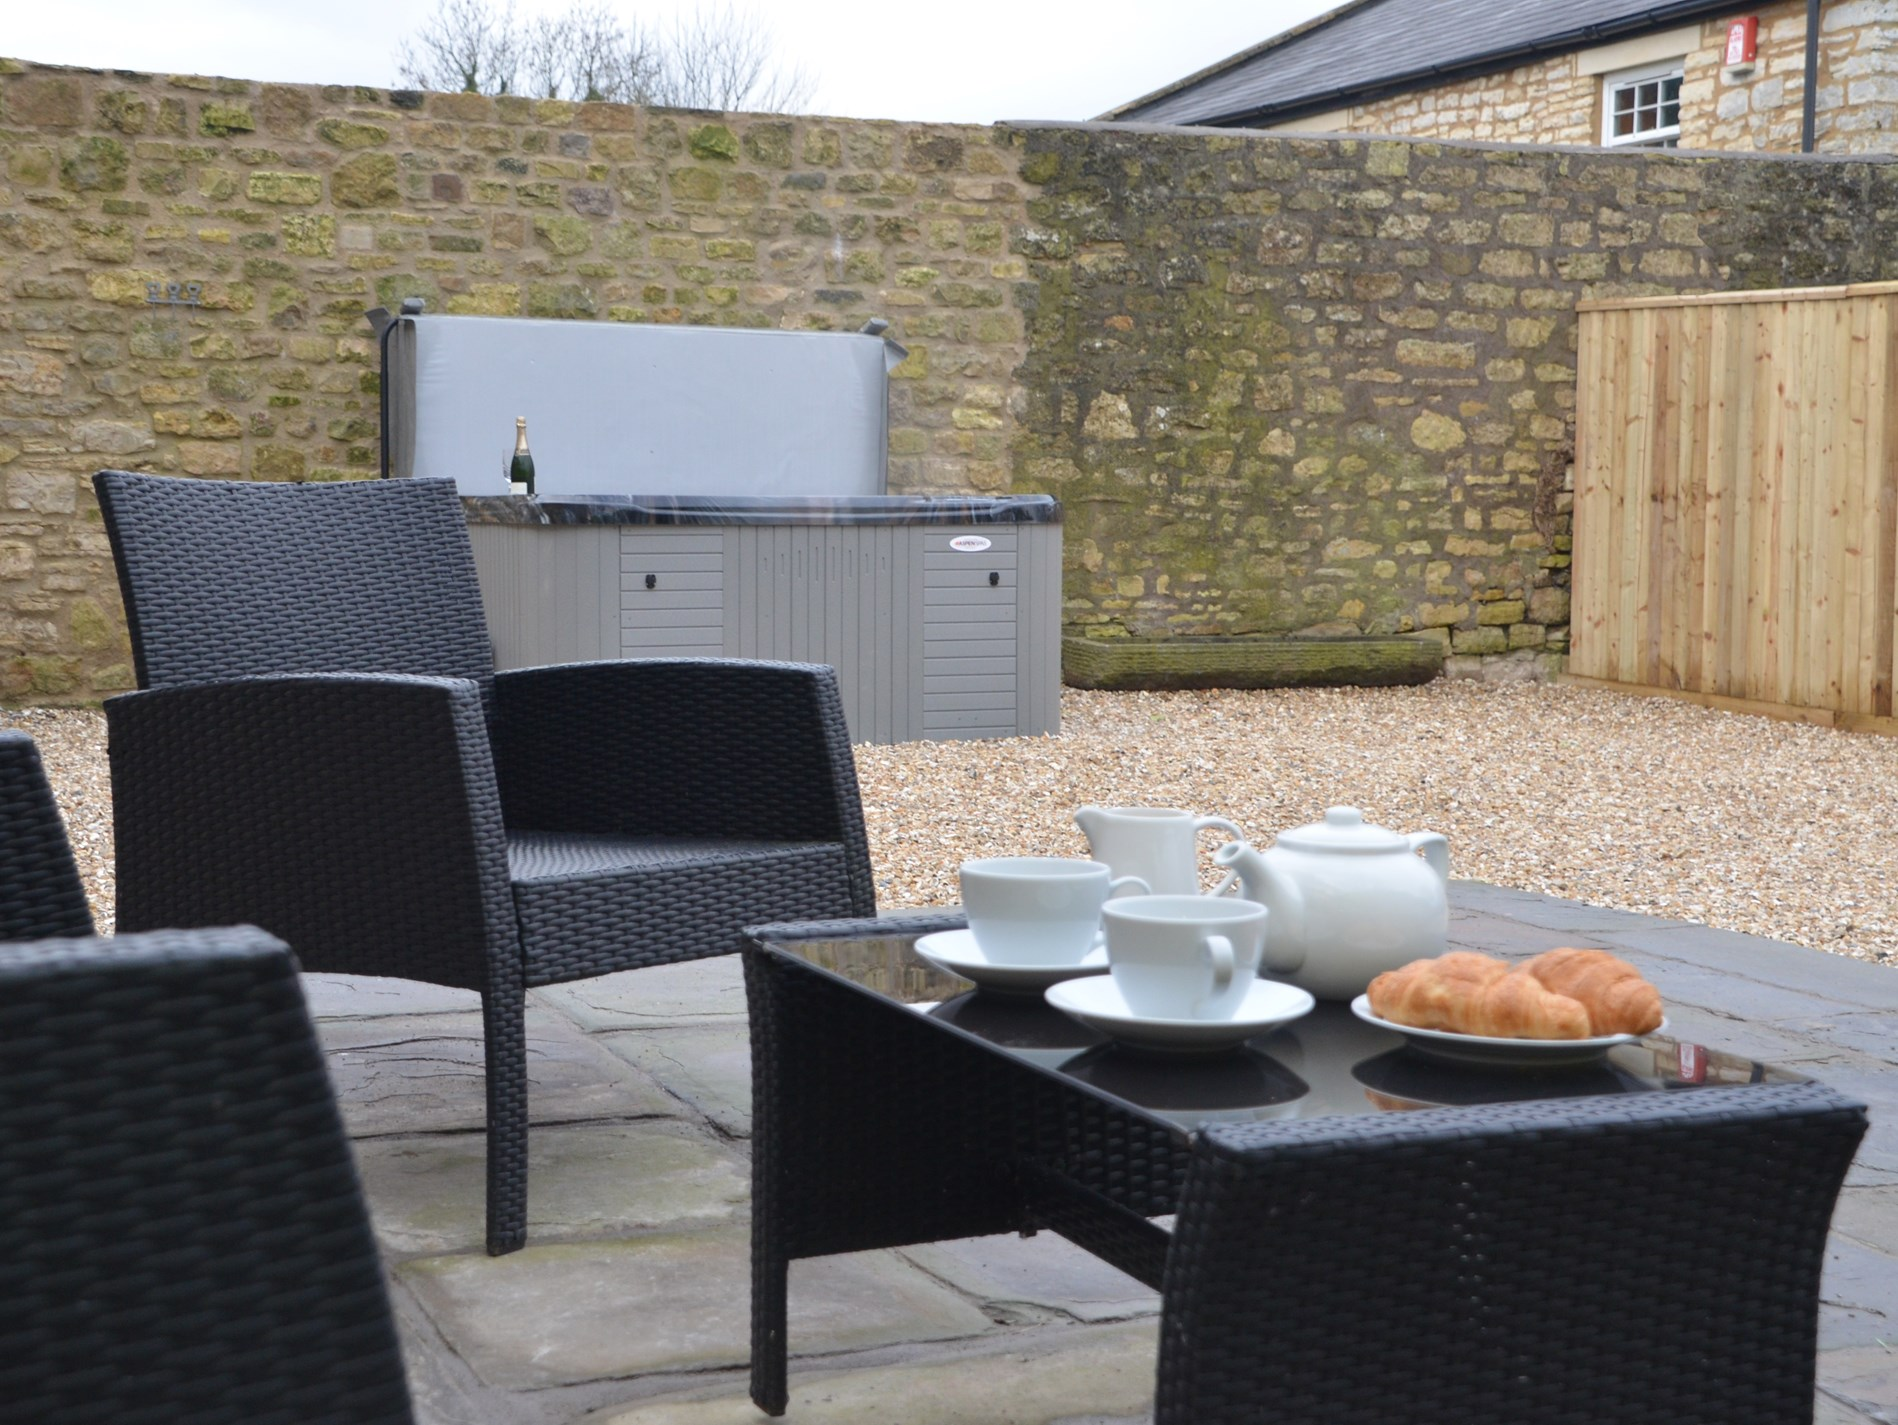 Outside seating area and hot tub